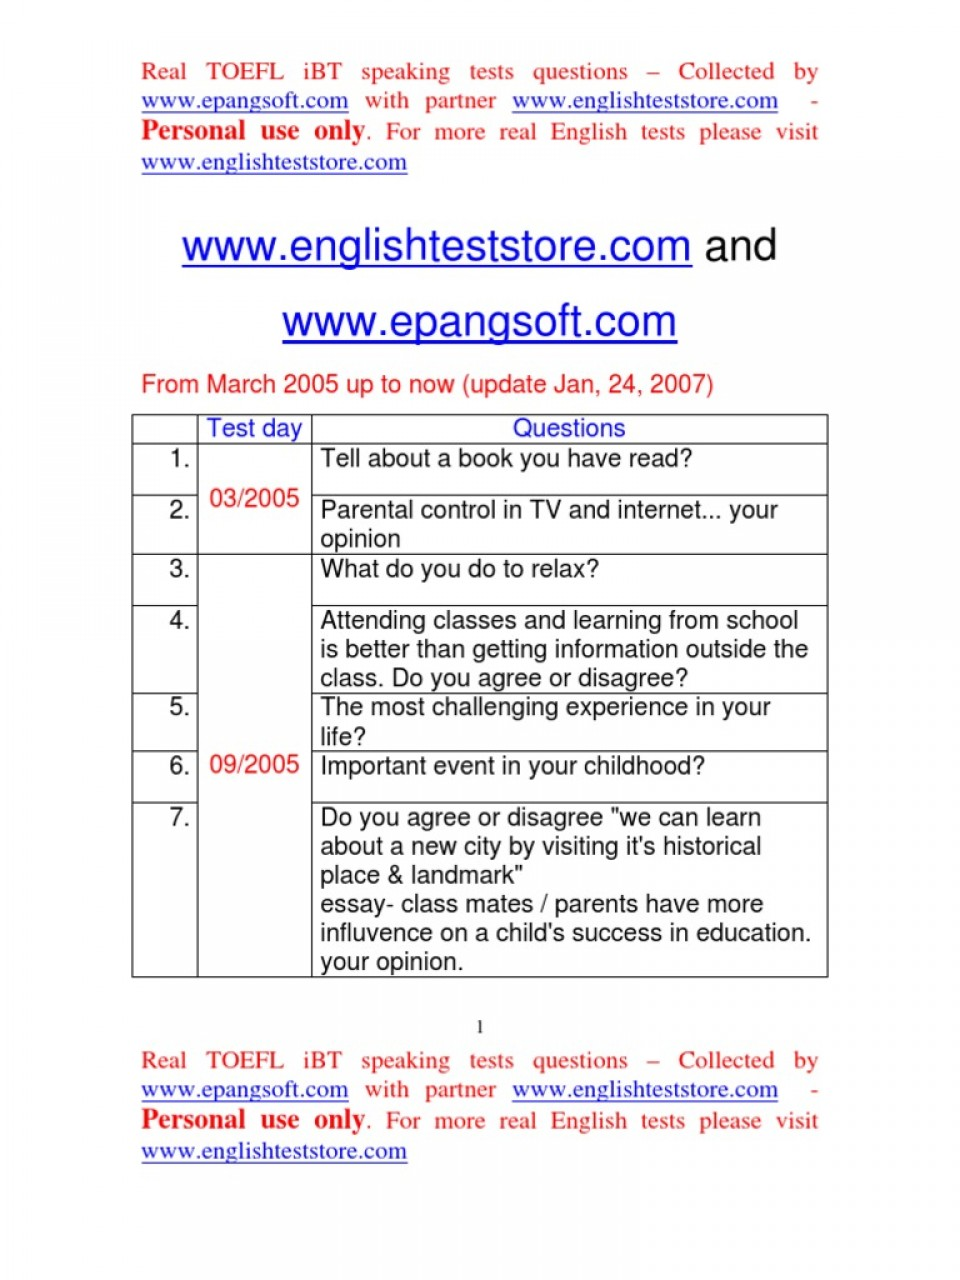 009 Essay Example Toefl Topic Preparat Oacute Rio Nashville Docshare Tips Real Ibt Speaking Test Questions From March  58517c54b6d87f49628 Taking For Topics Striking 2015960